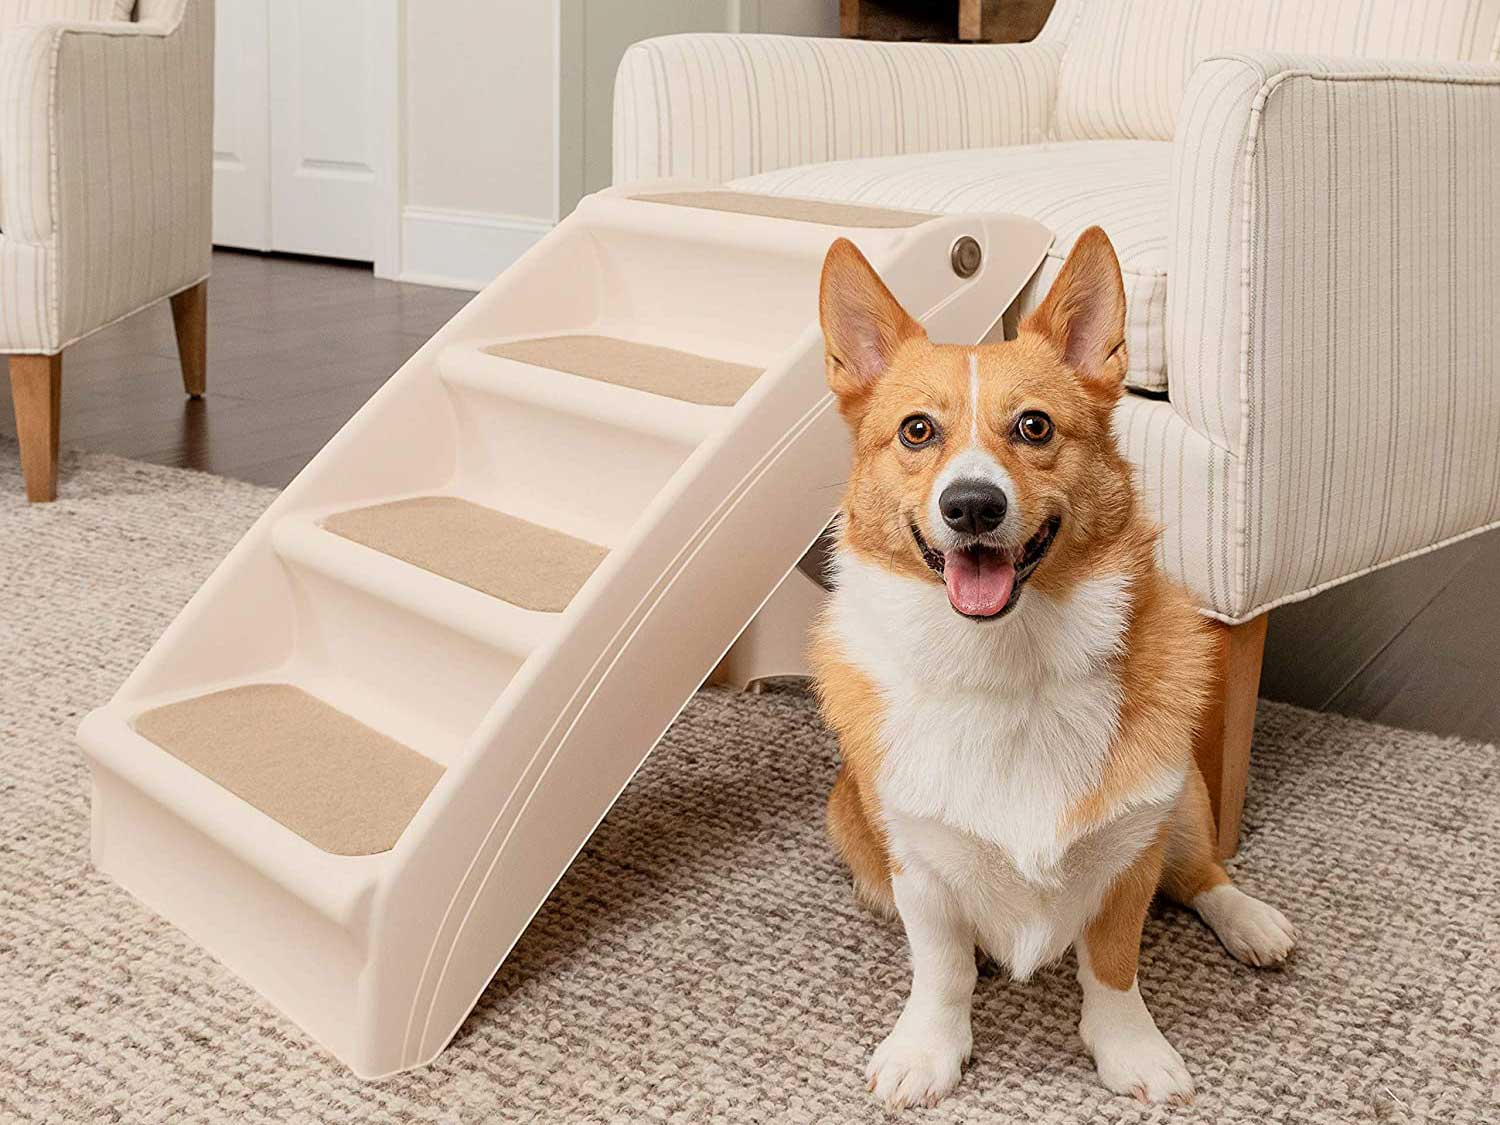 Dog sitting with pet stairs leading up to chair.